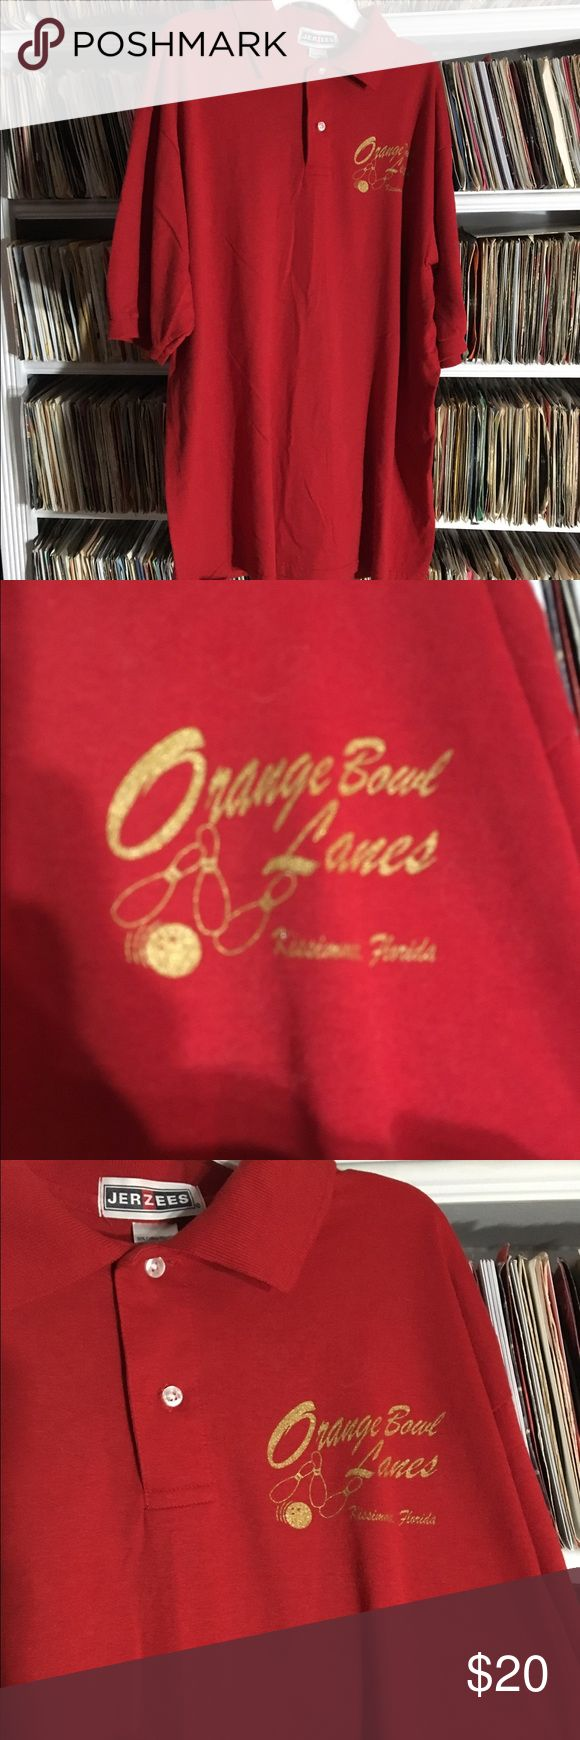 Orange Bowl Lanes Kissimmee Florida polo shirt Vintage bowling polo shirt from kissimmee Florida. It's in good shape. Nice glittery gold graphics. Vintage Shirts Polos